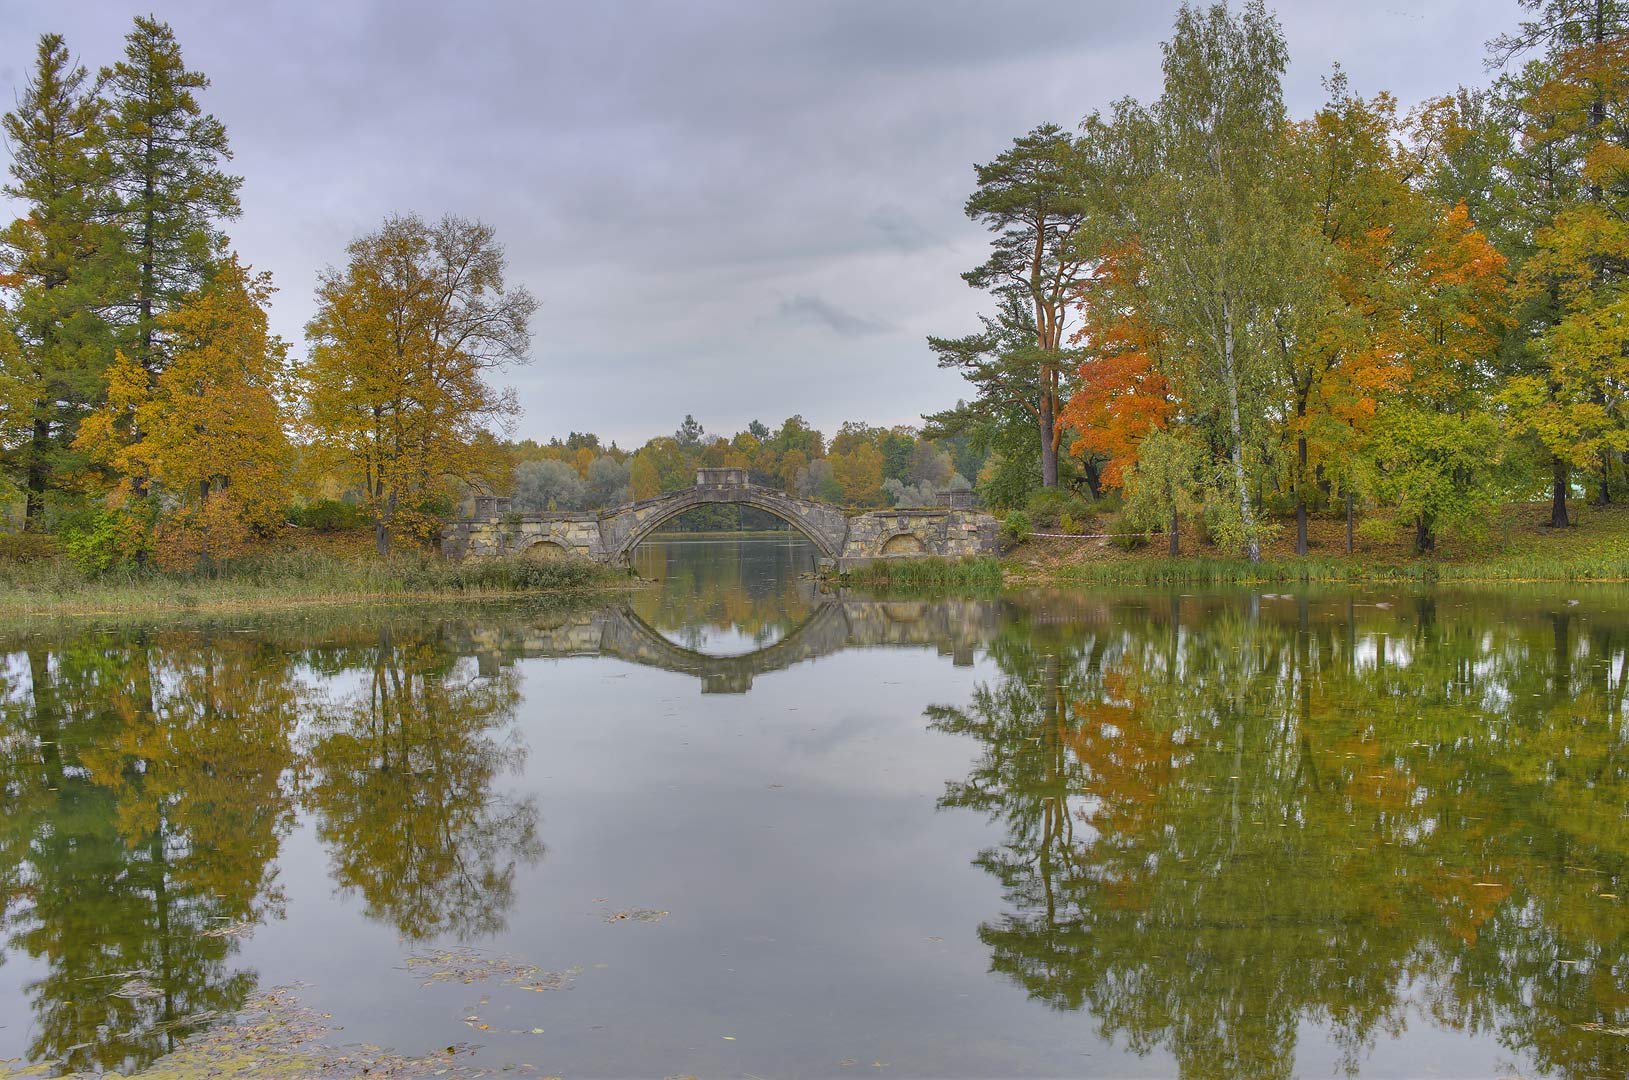 Humpy Bridge in Beloe Lake in Gatchina Park in Gatchina, a suburb of St.Petersburg. Russia